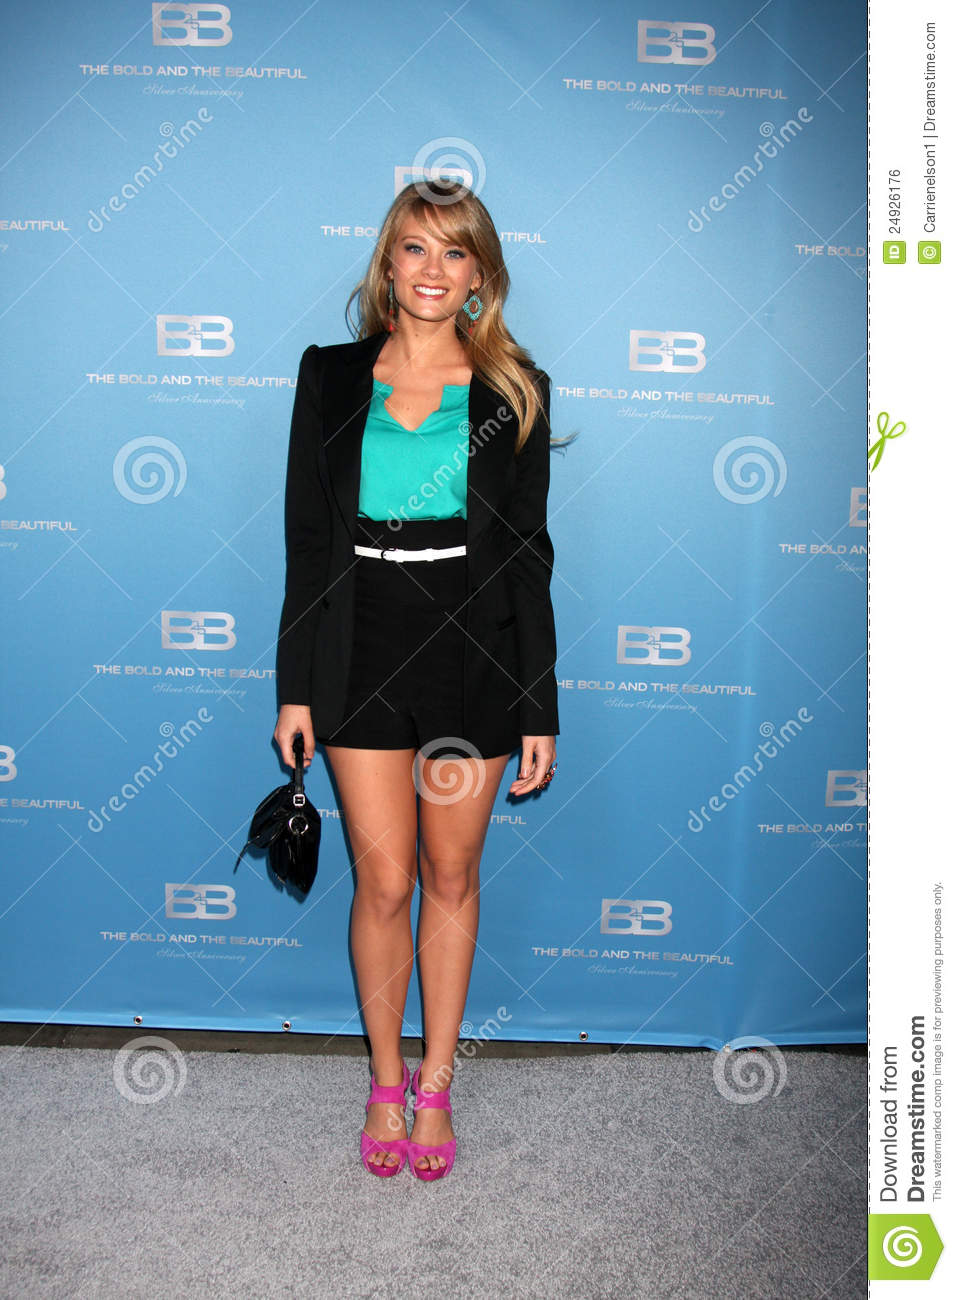 kim matula salarykim matula imdb, kim matula, kim matula bold and beautiful, kim matula dawn patrol, kim matula salary, kim matula leaving b&b, kim matula height, kim matula wikipedia, kim matula instagram, kim matula married, kim matula twitter, kim matula net worth, kim matula enceinte, kim matula boyfriend, kim matula facebook, kim matula returns, kim matula pregnant, kim matula feet, kim matula hot, kim matula news